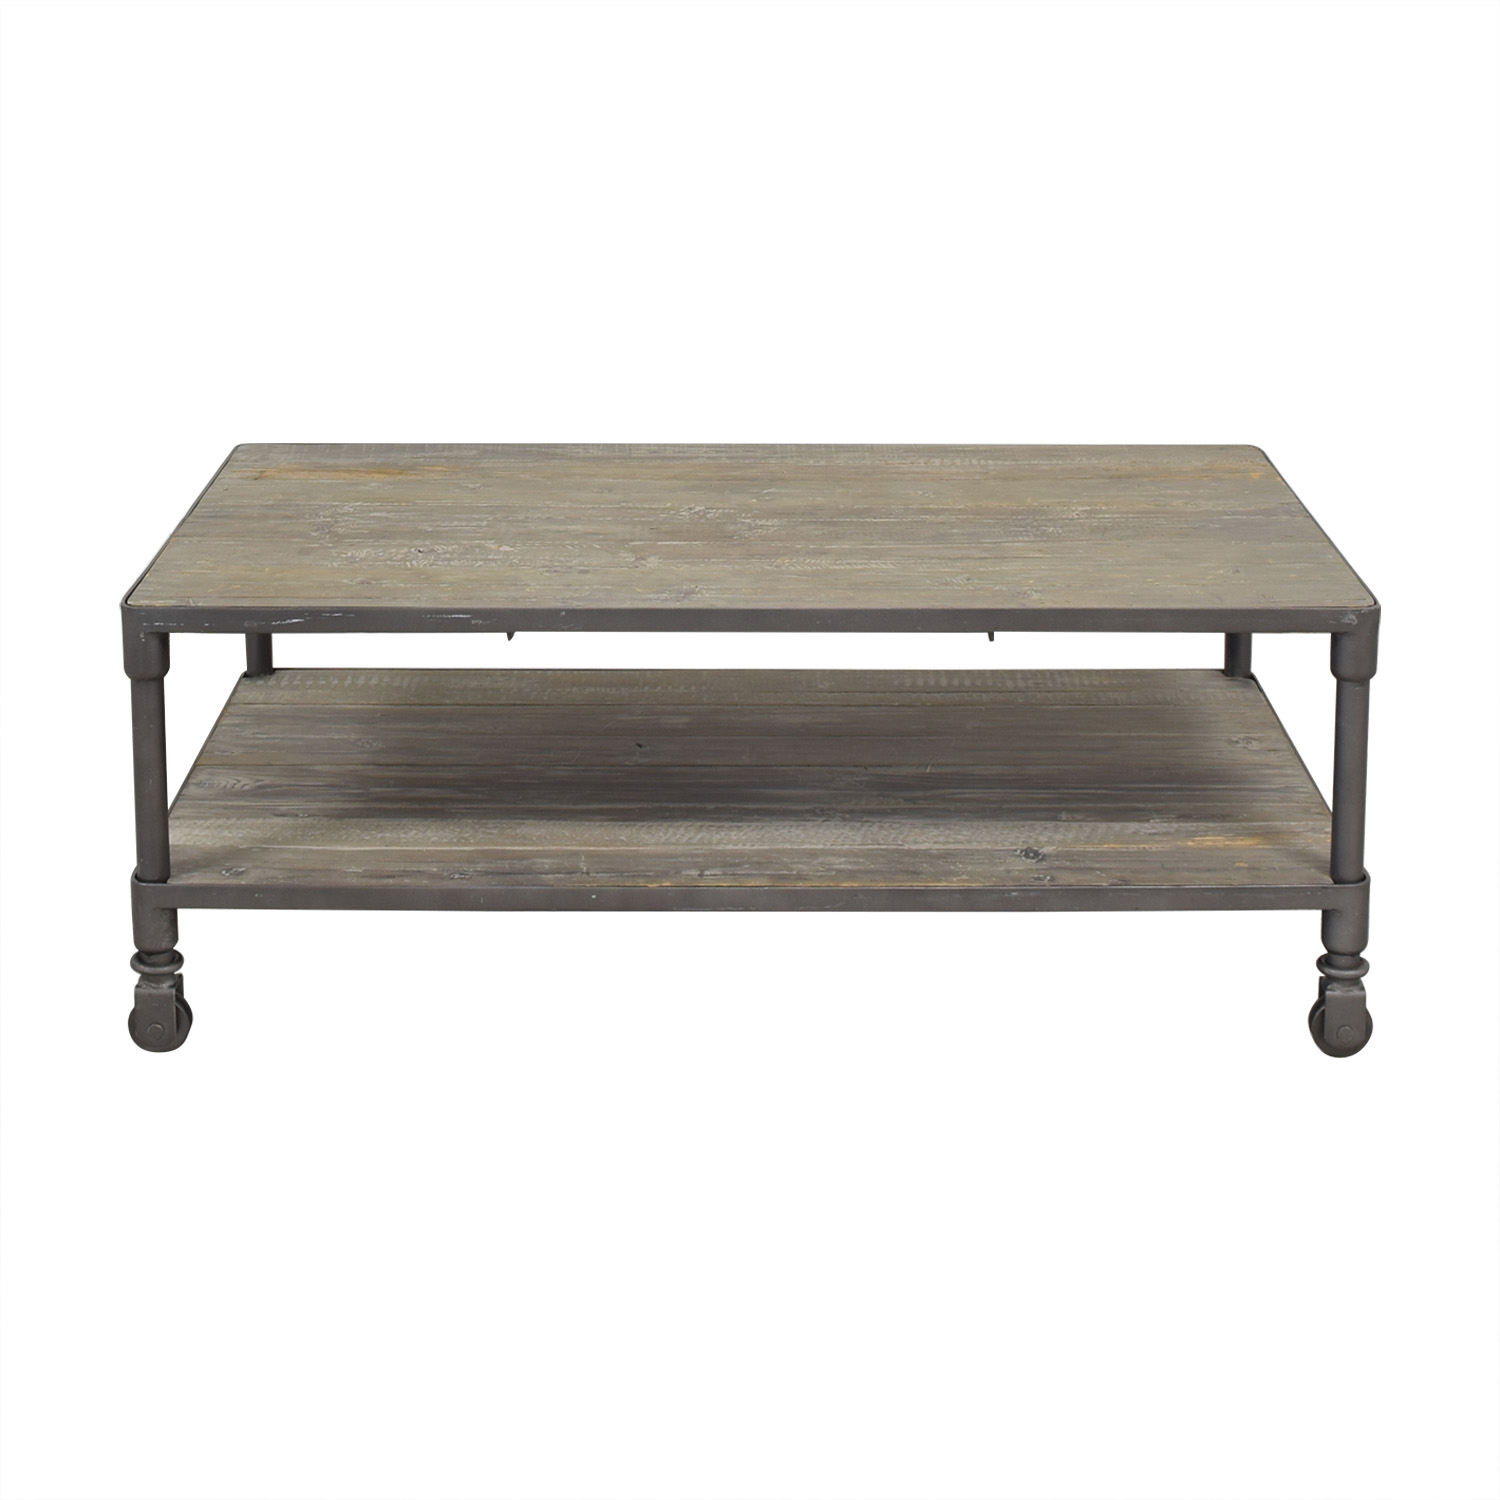 ABC Carpet & Home ABC Carpet & Home Industrial Rolling Two Tier Coffee Table Tables